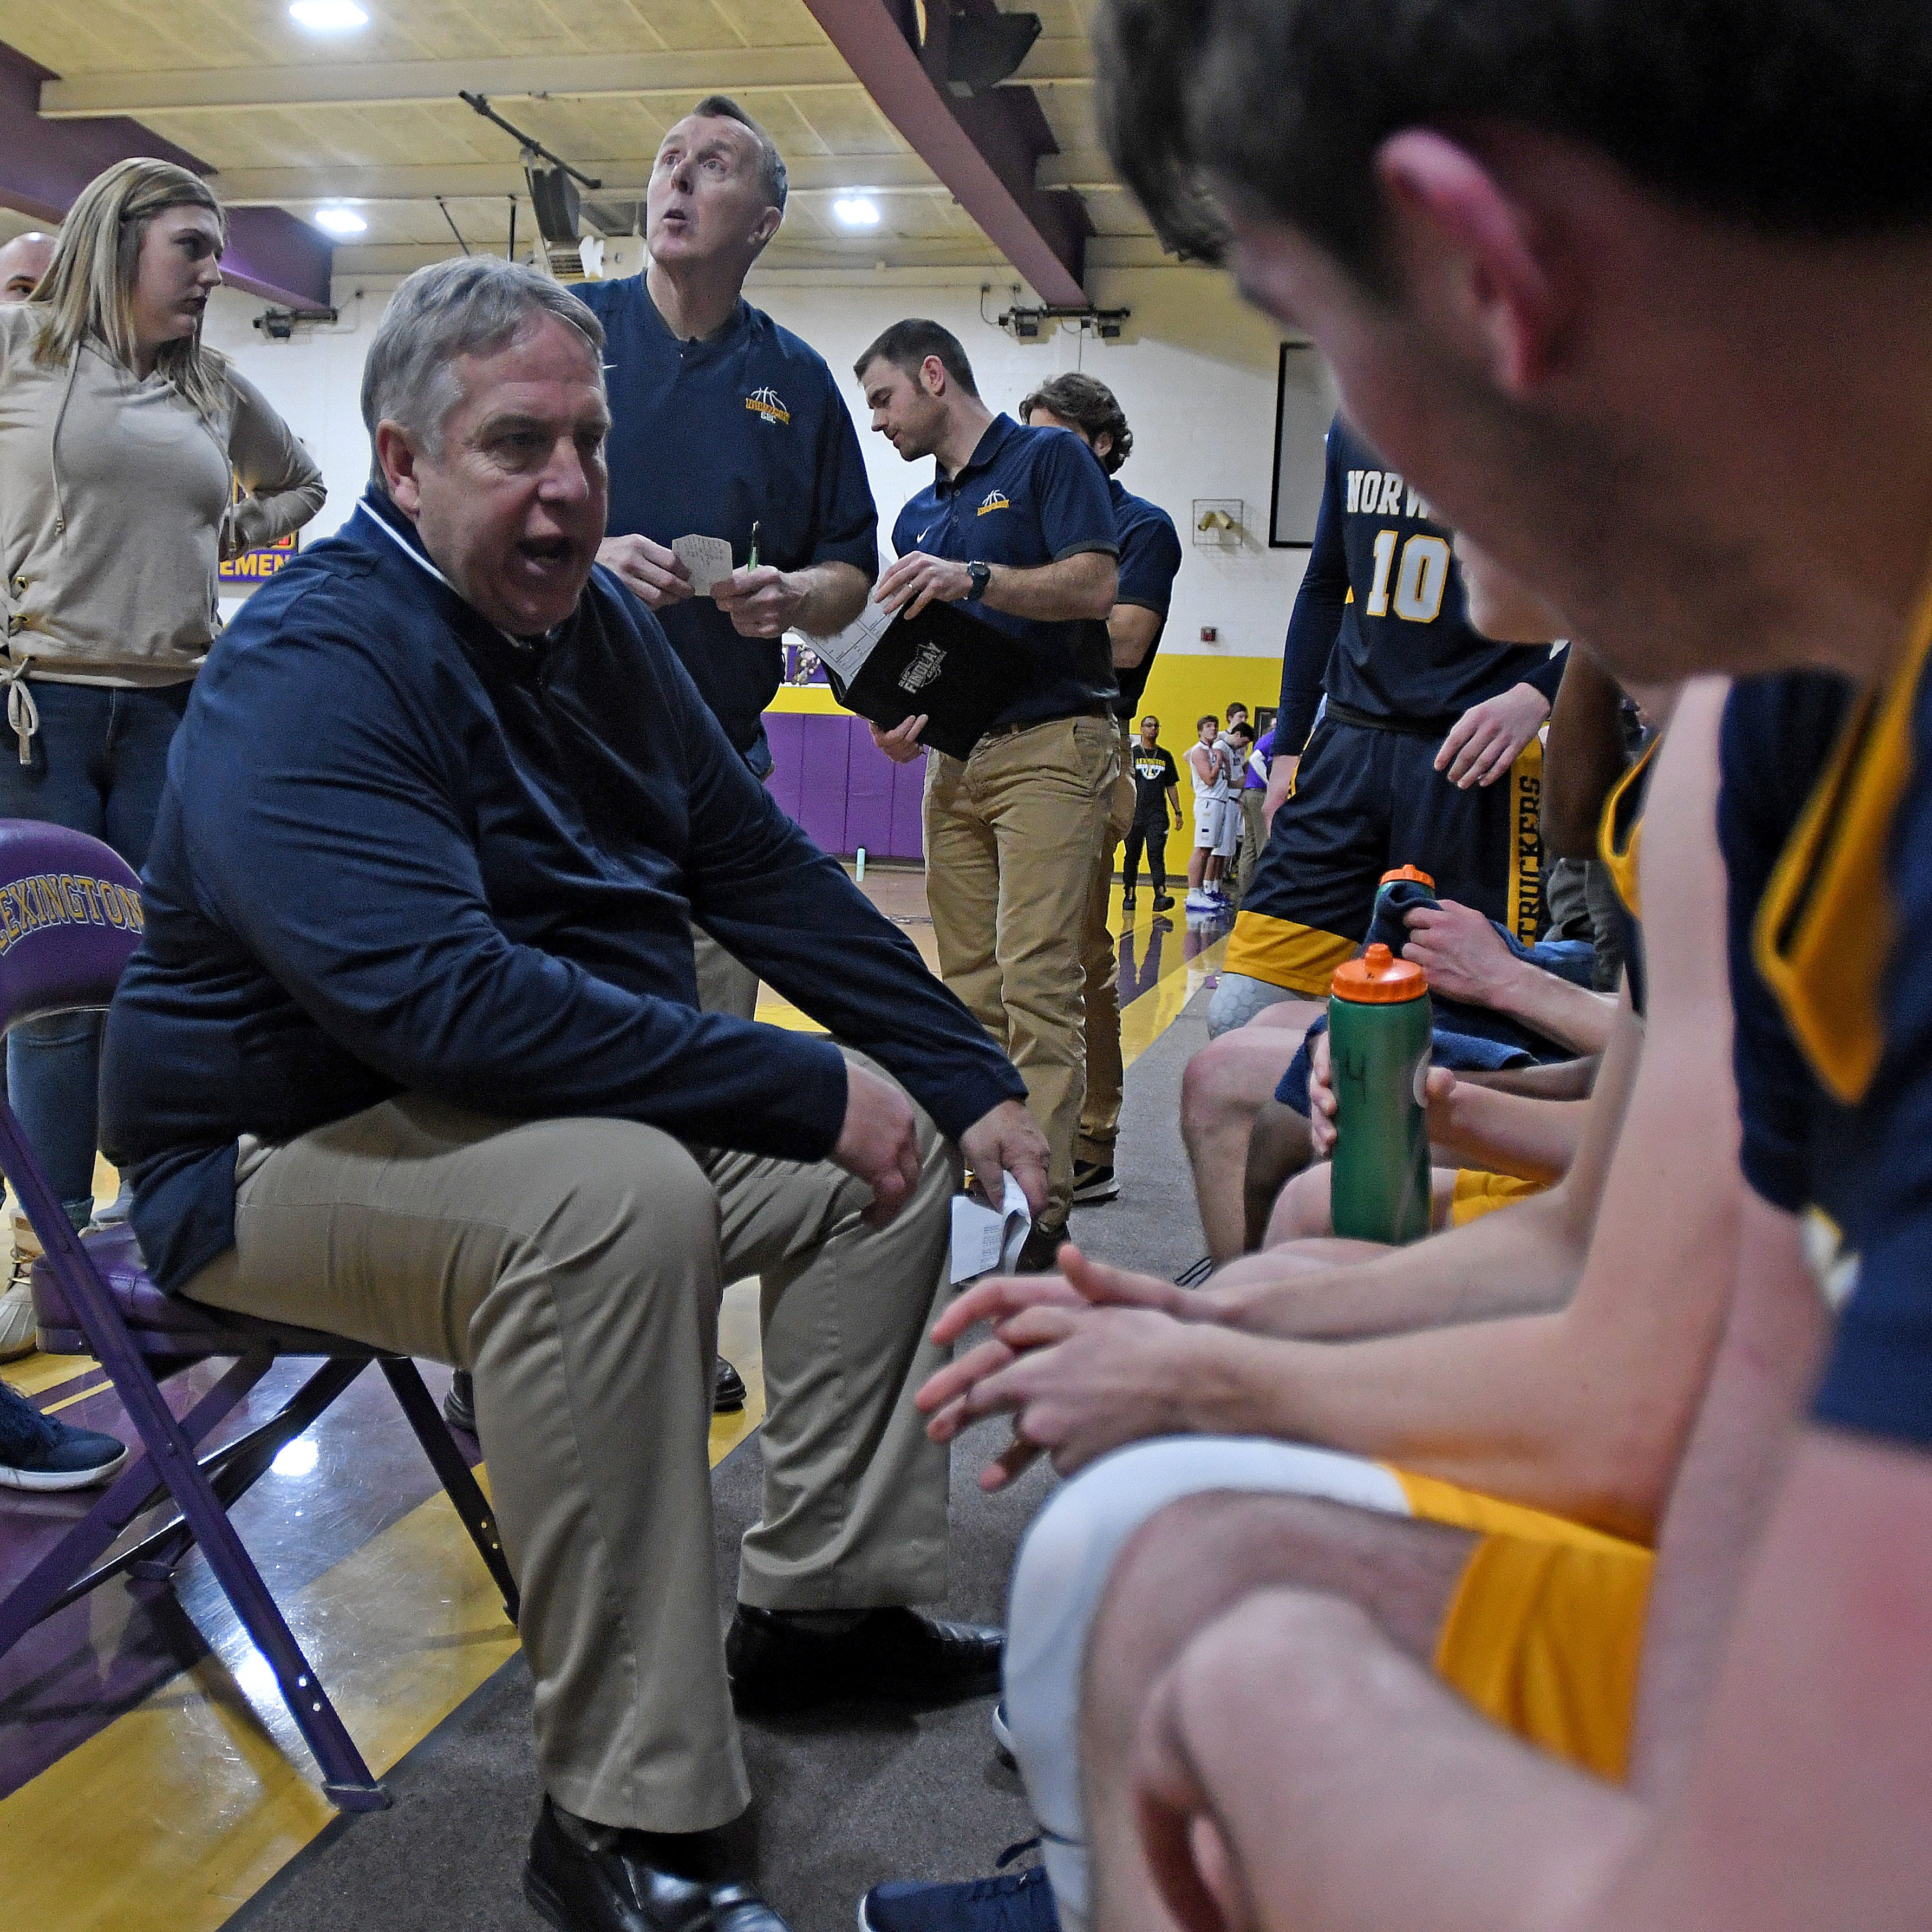 Camp Happy: Gray's colorful coaching career full of wins, wisecracks